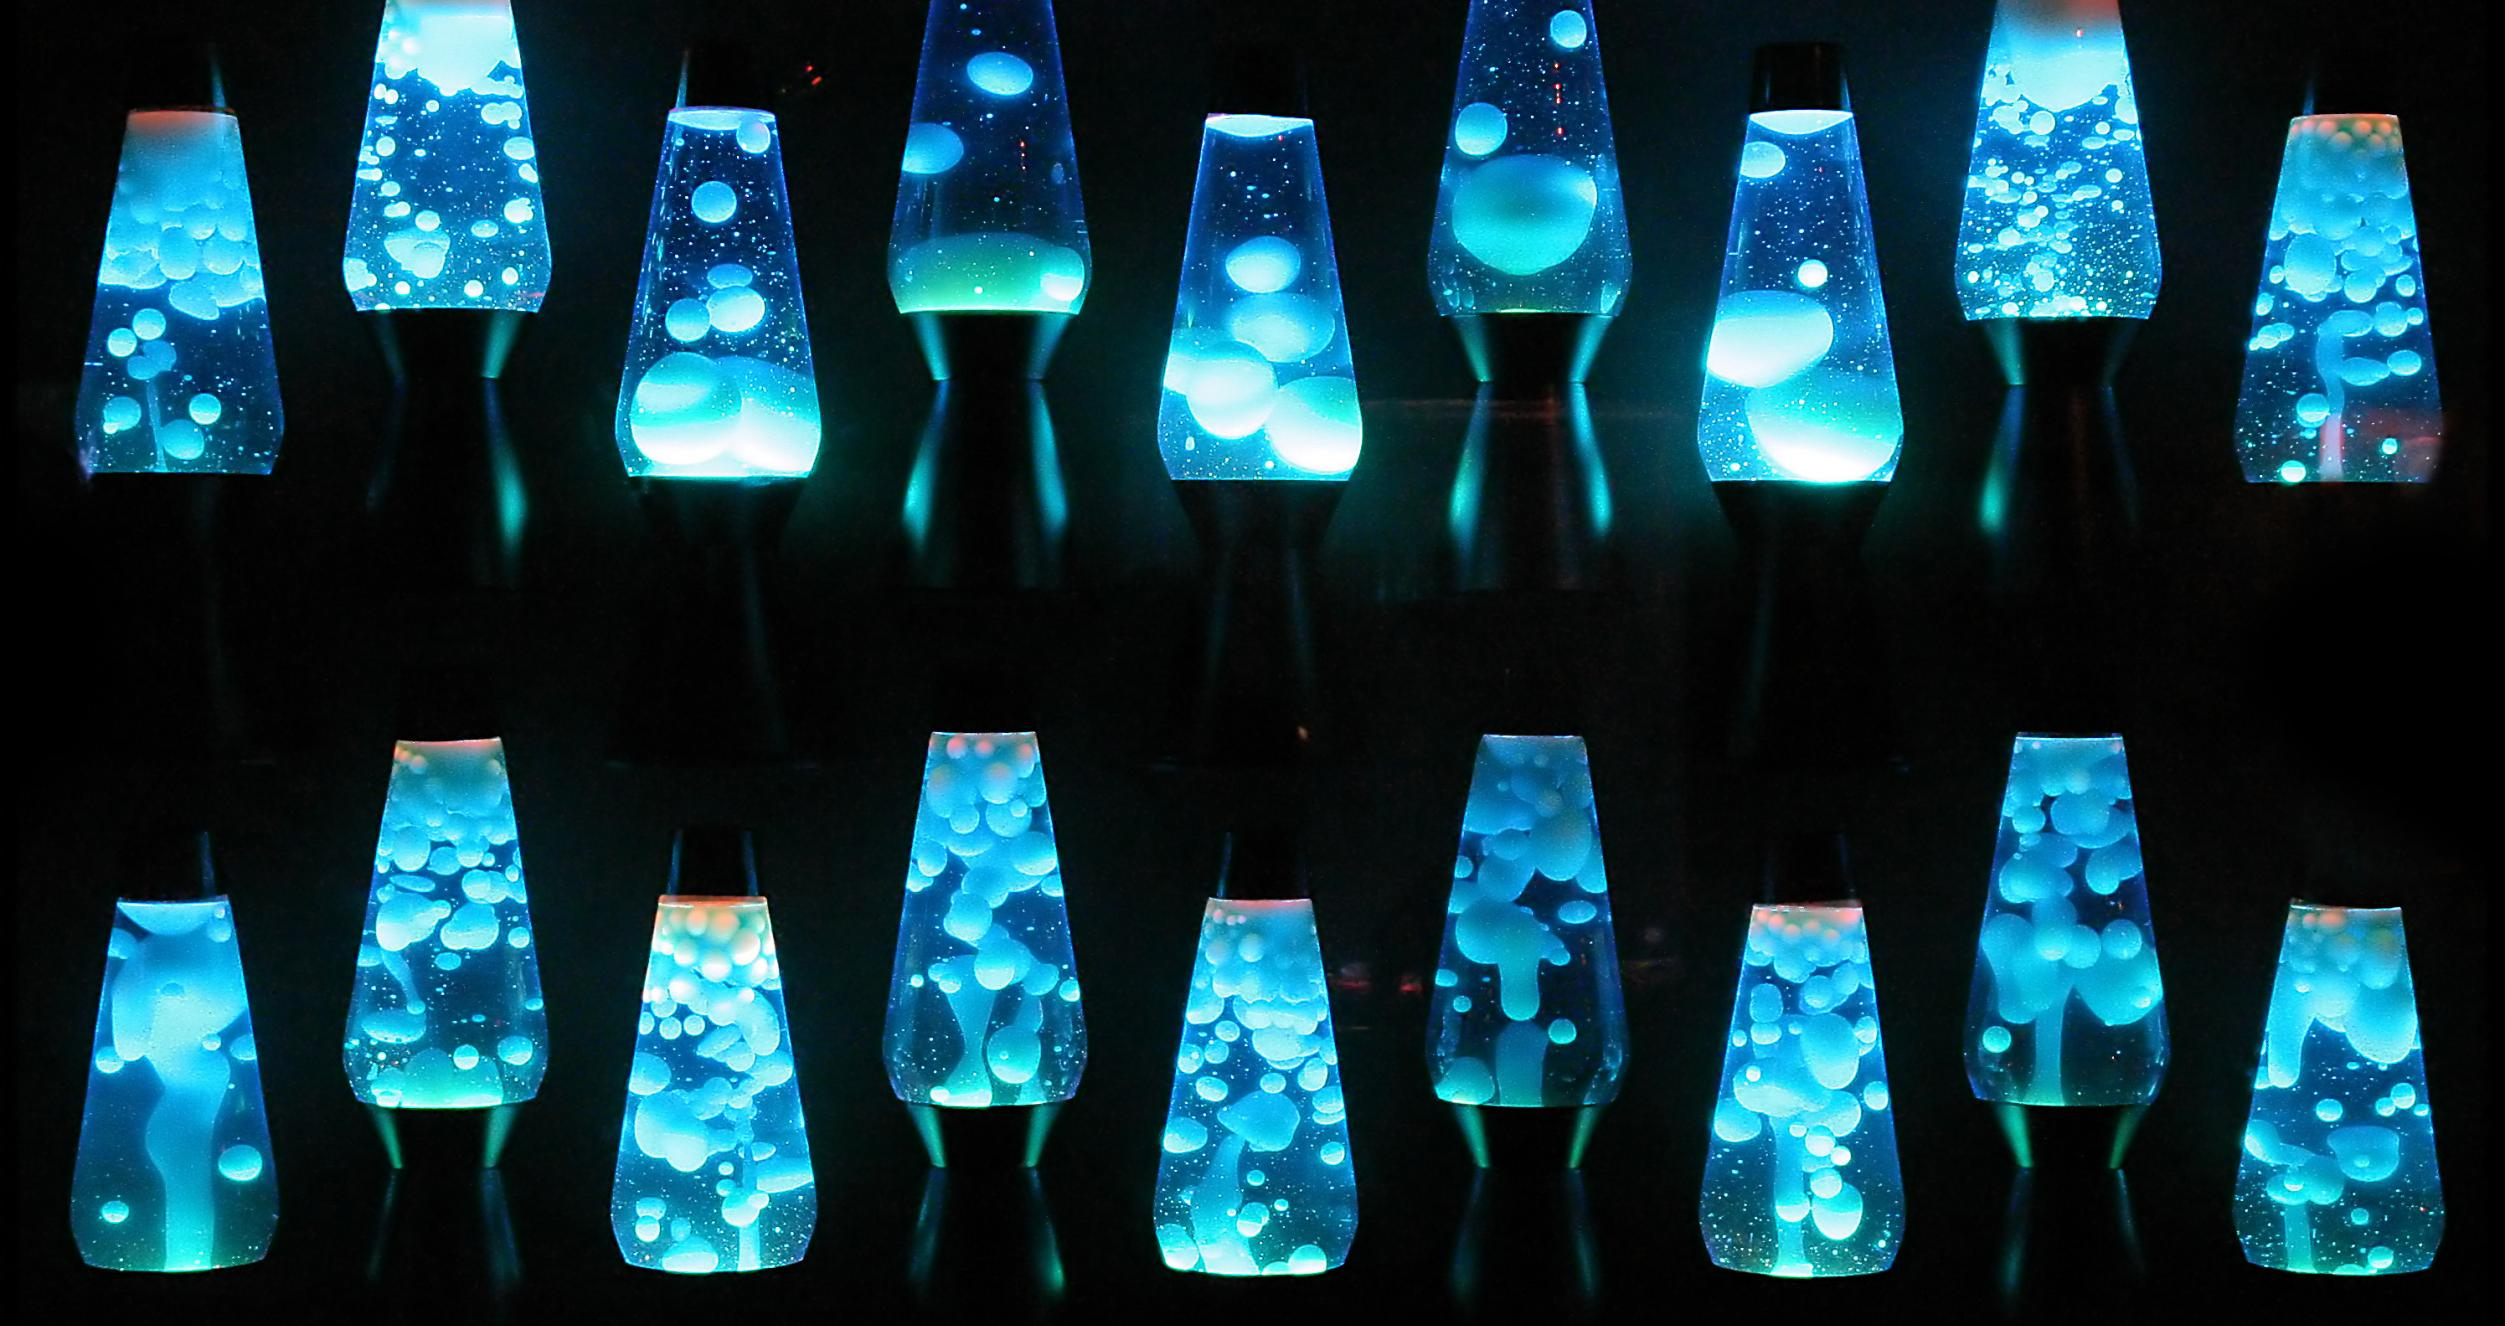 Row of blue lavalamps